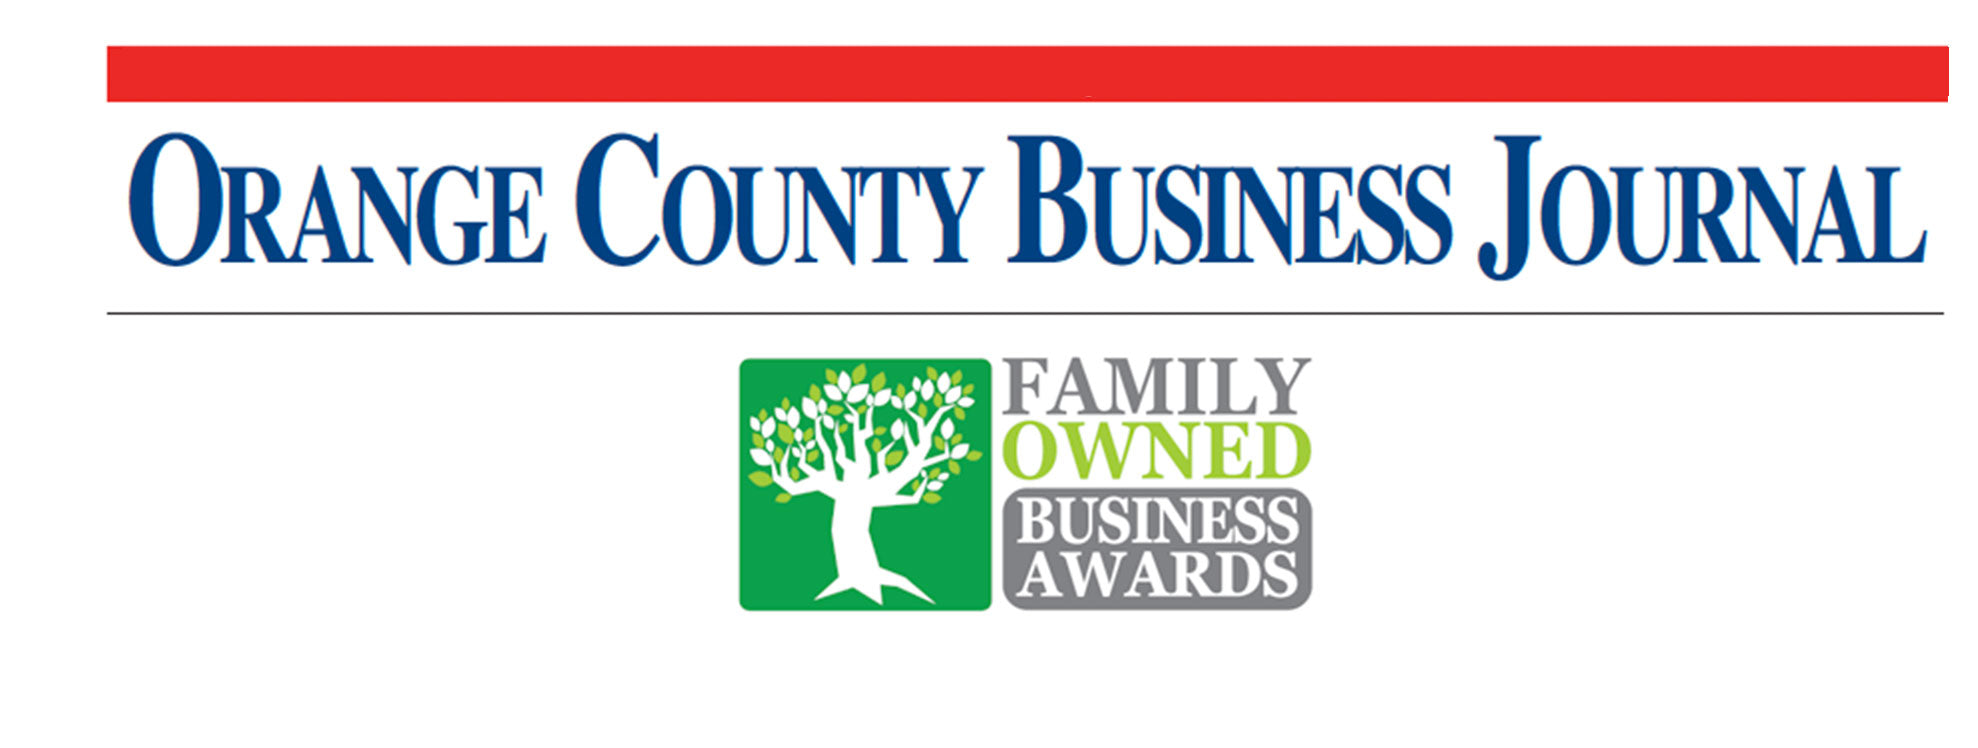 Slyde Handboards orange county business journal best family owned business